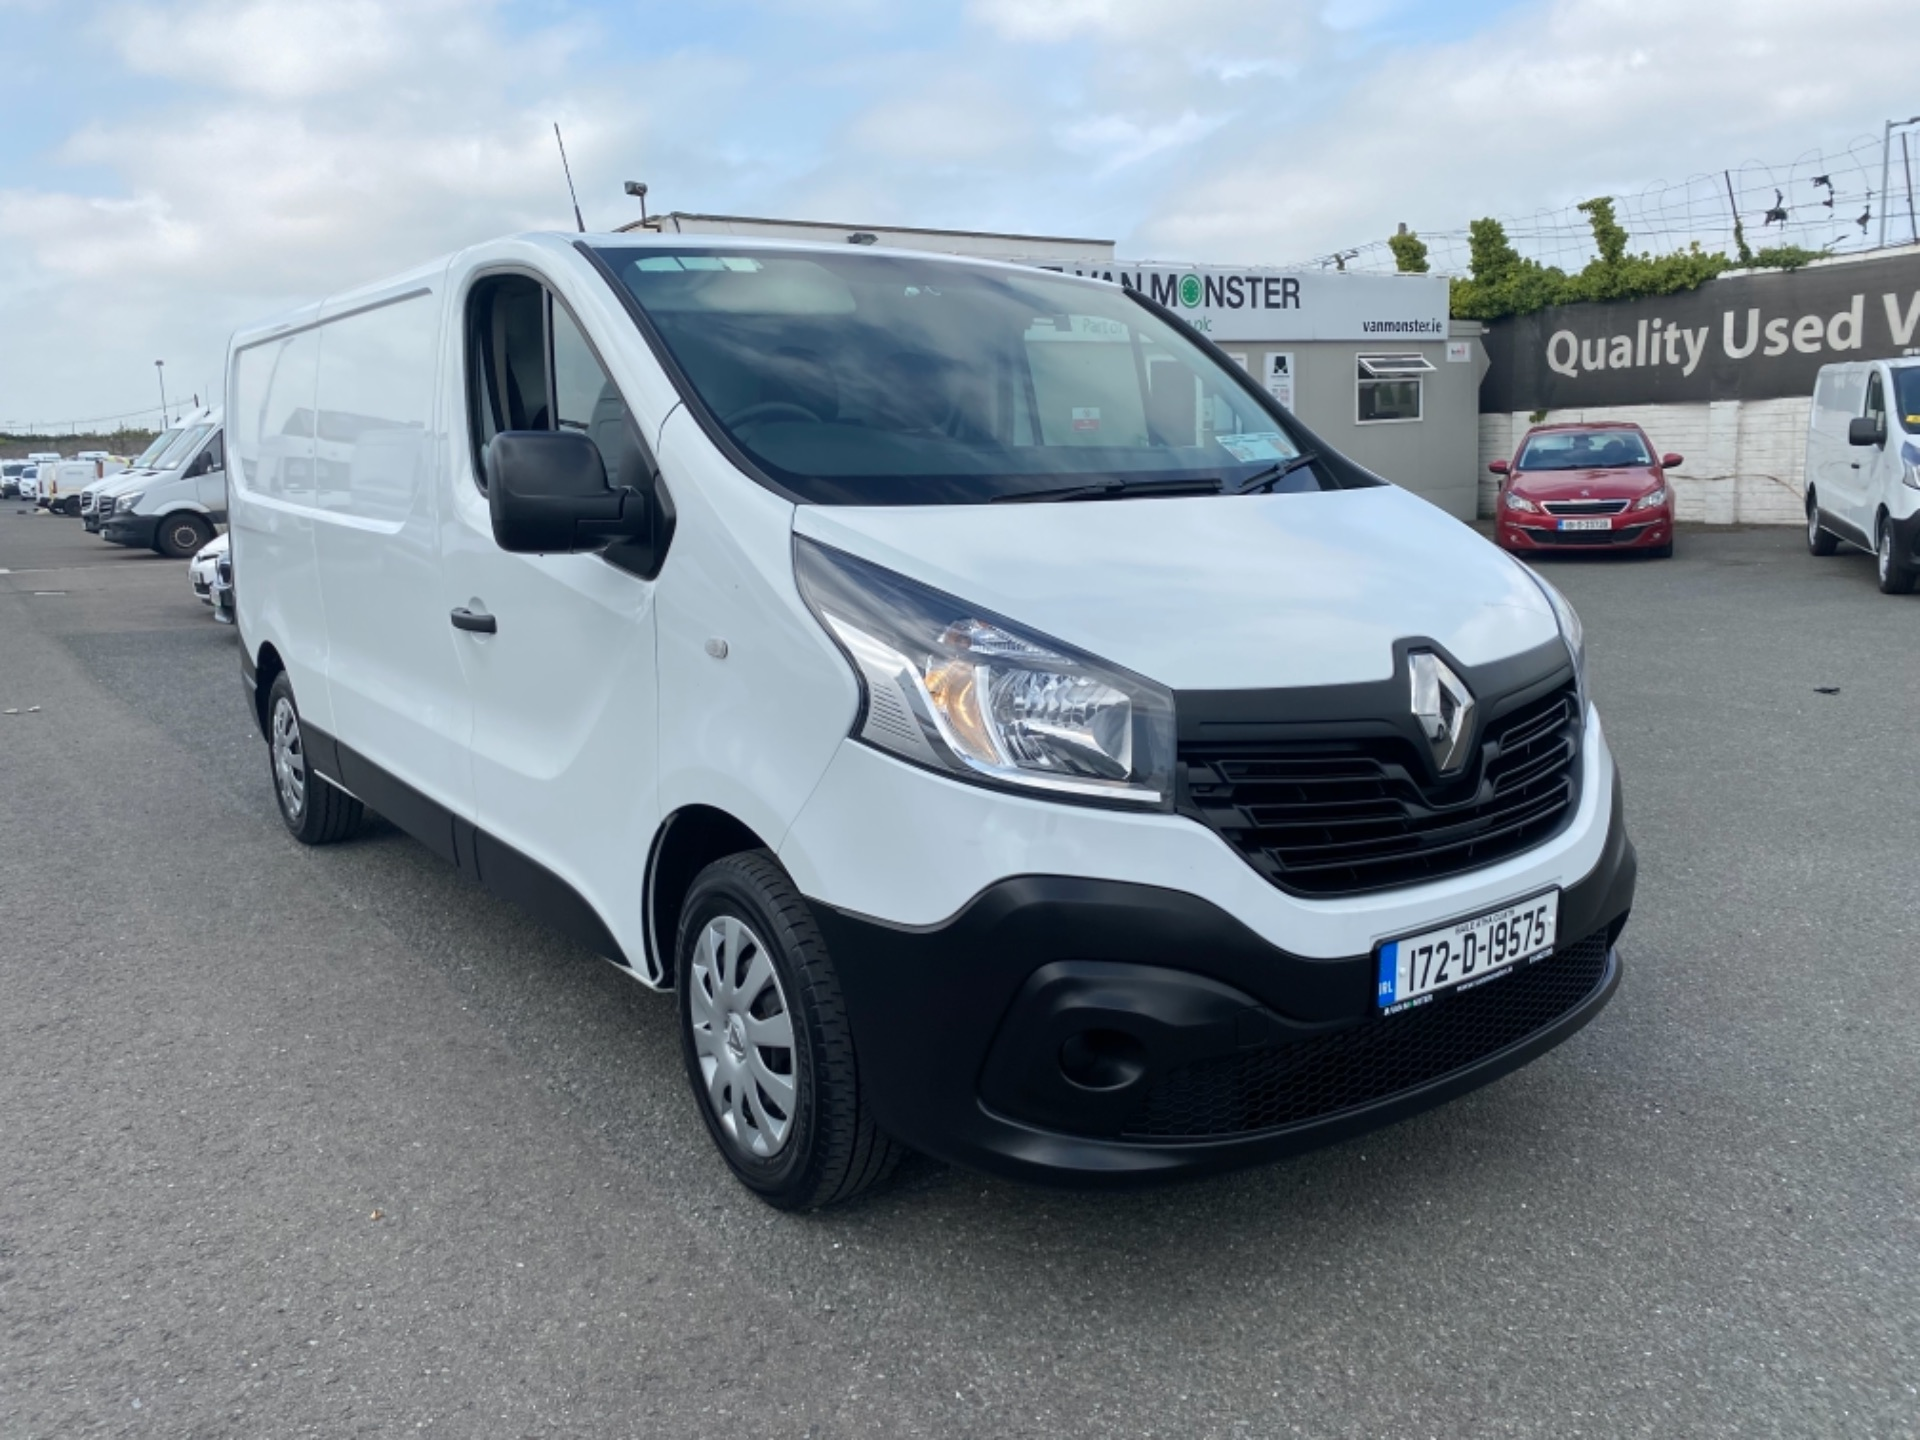 2017 Renault Trafic LL29 DCI 120 Business 3DR (172D19575) Image 1